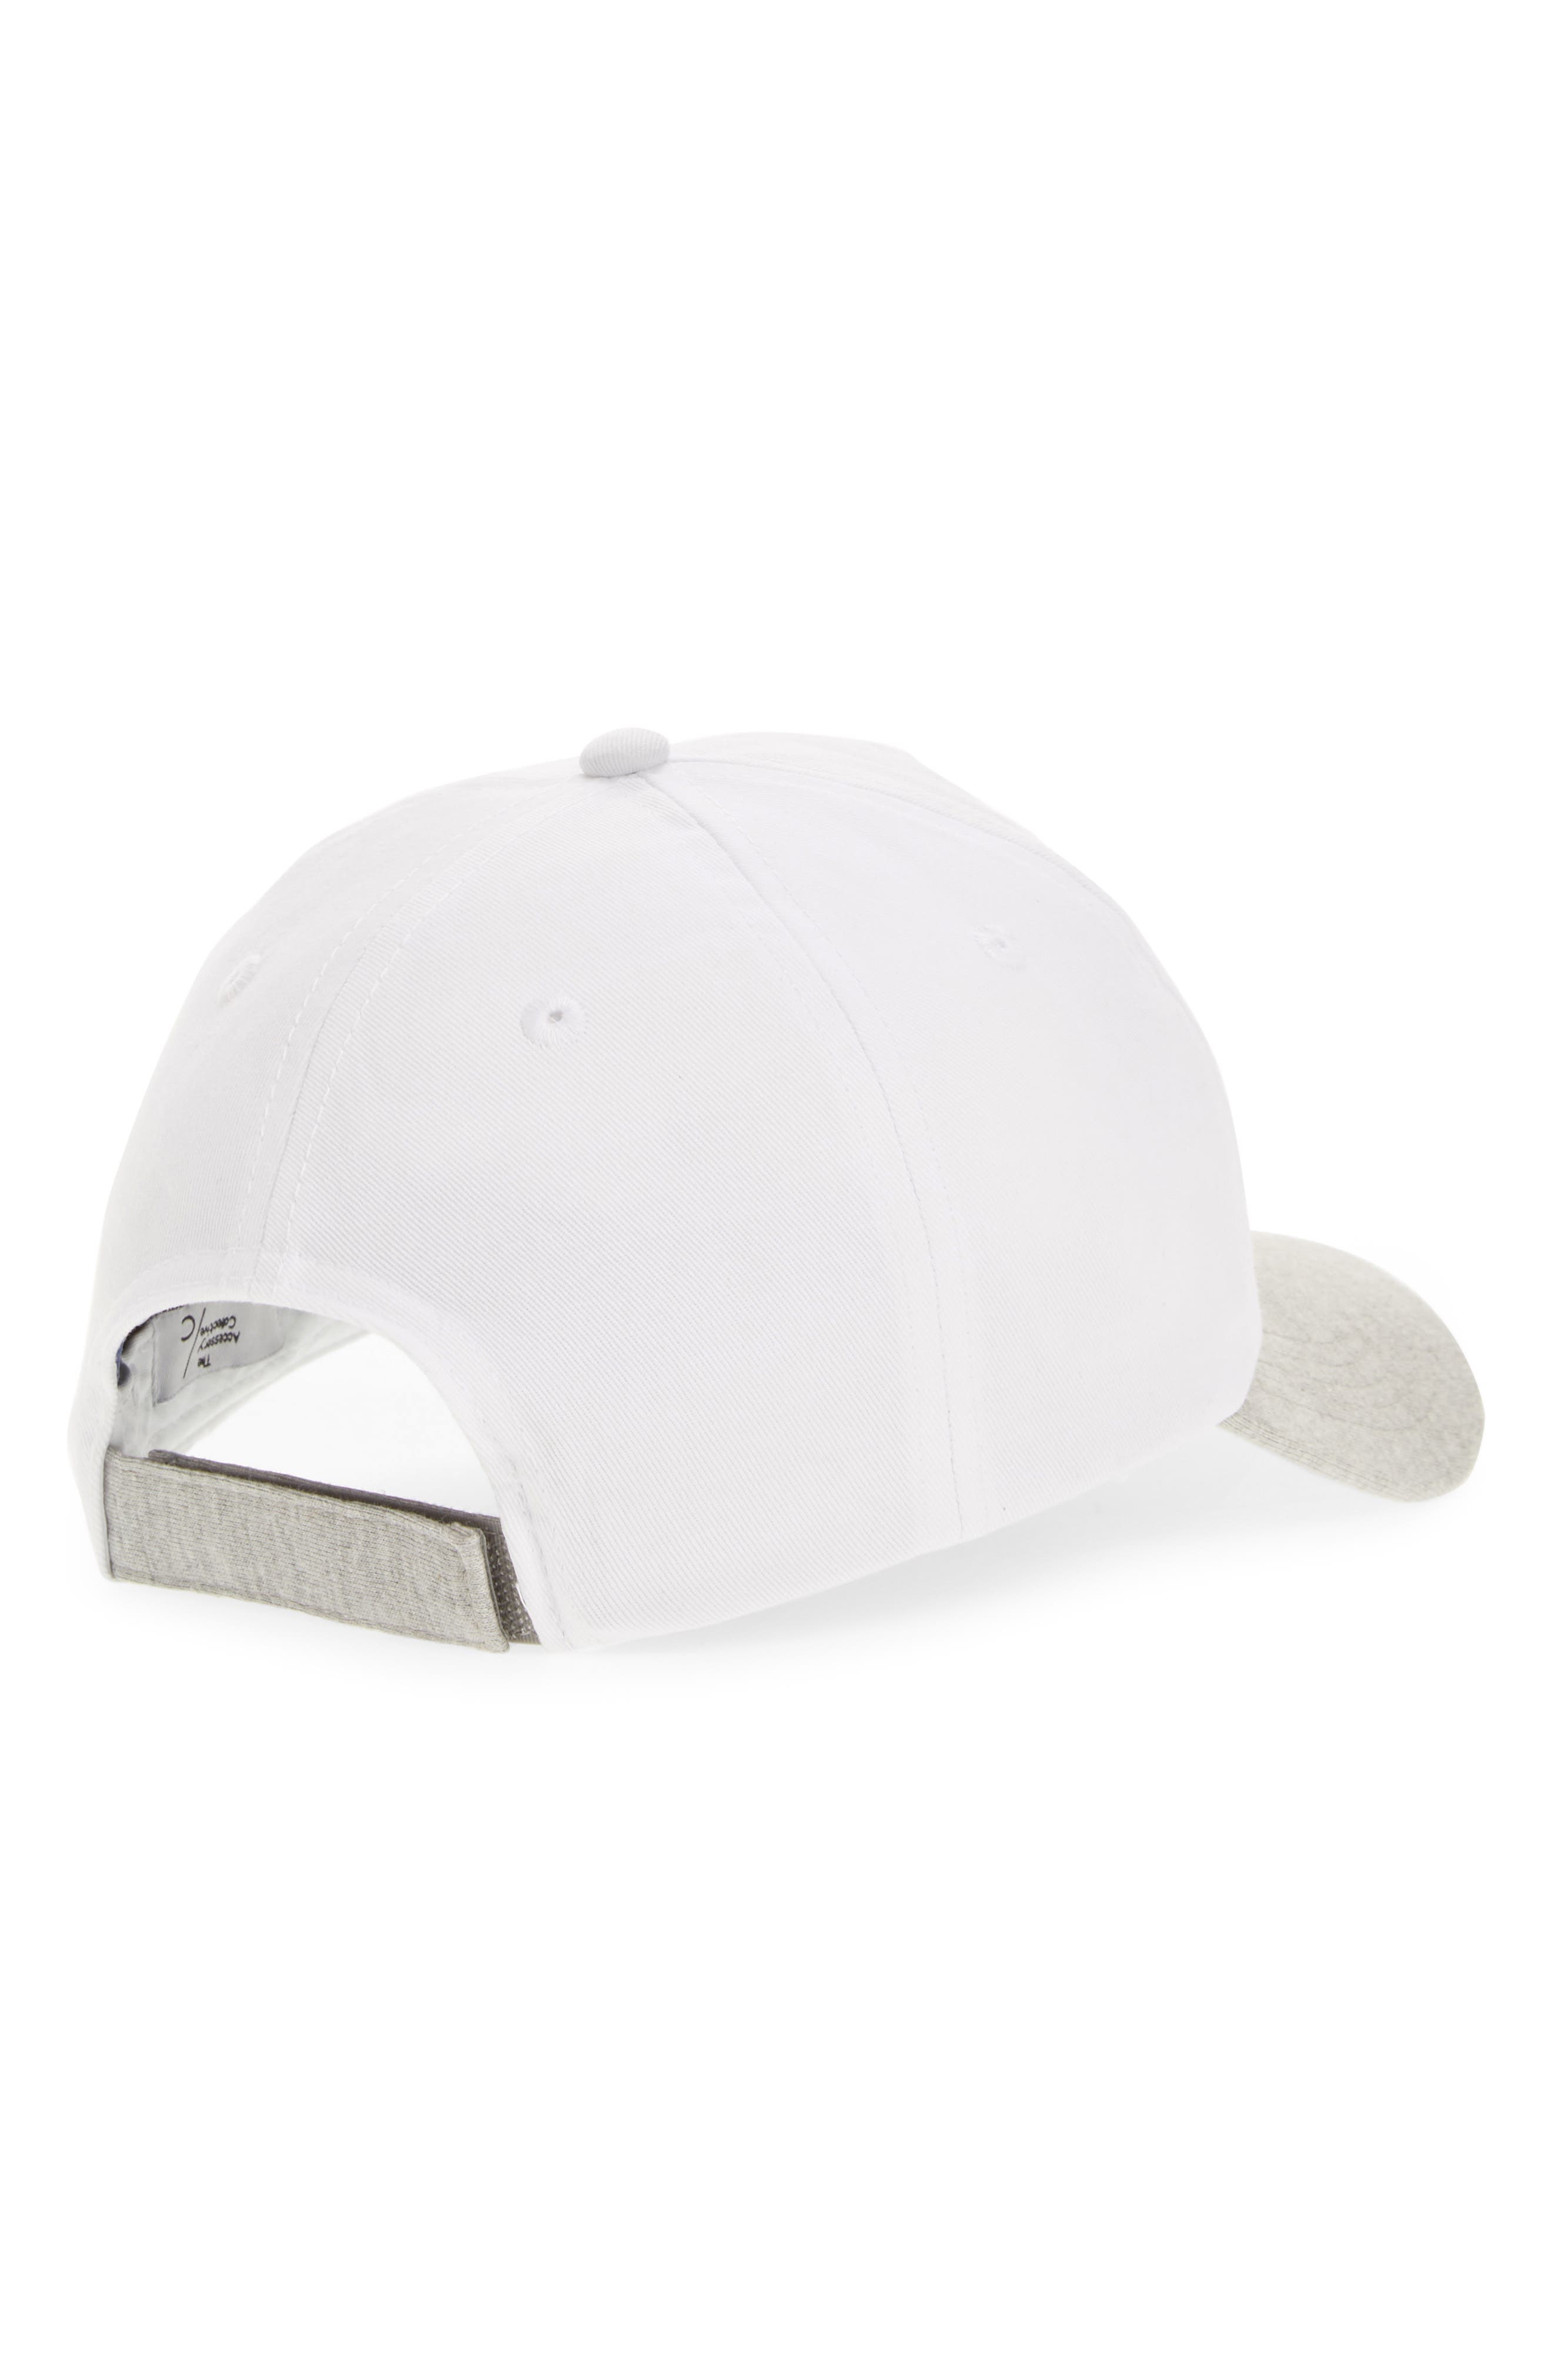 Accessory Collective Happiness Baseball Cap,                             Alternate thumbnail 2, color,                             100